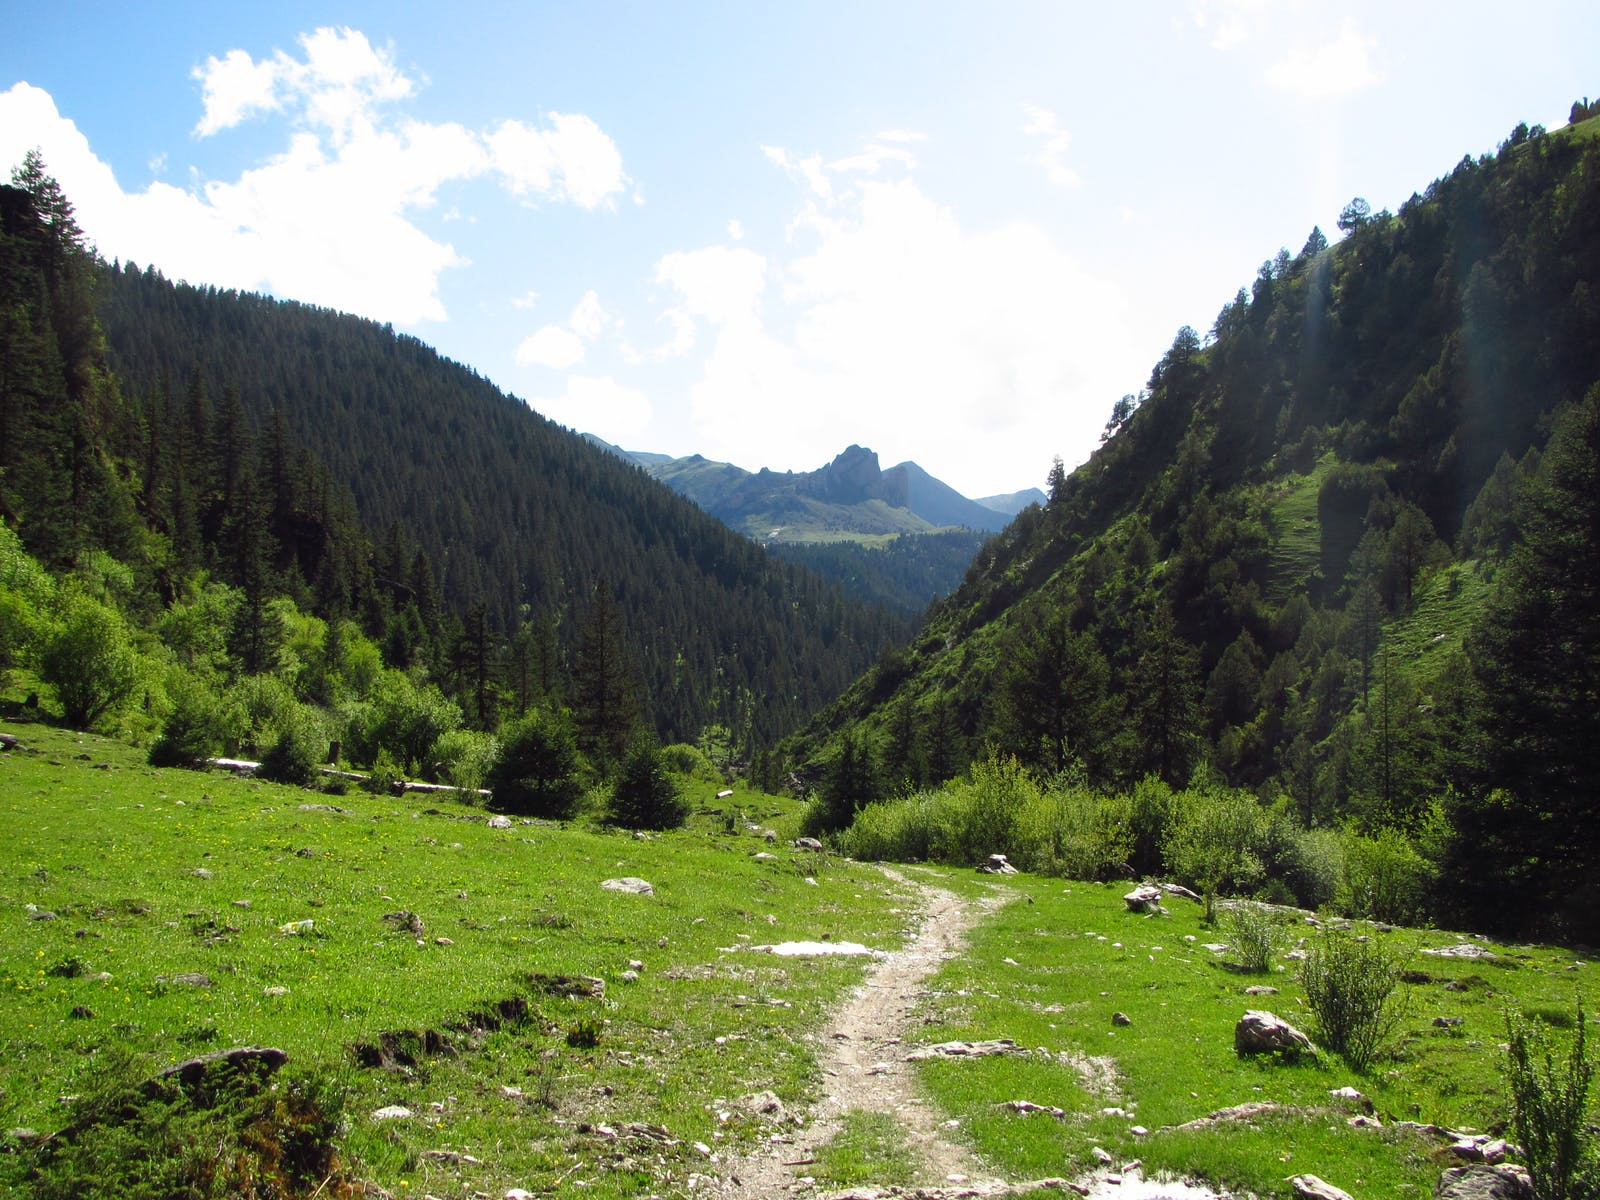 Hengduan Mountains Subalpine Conifer Forests